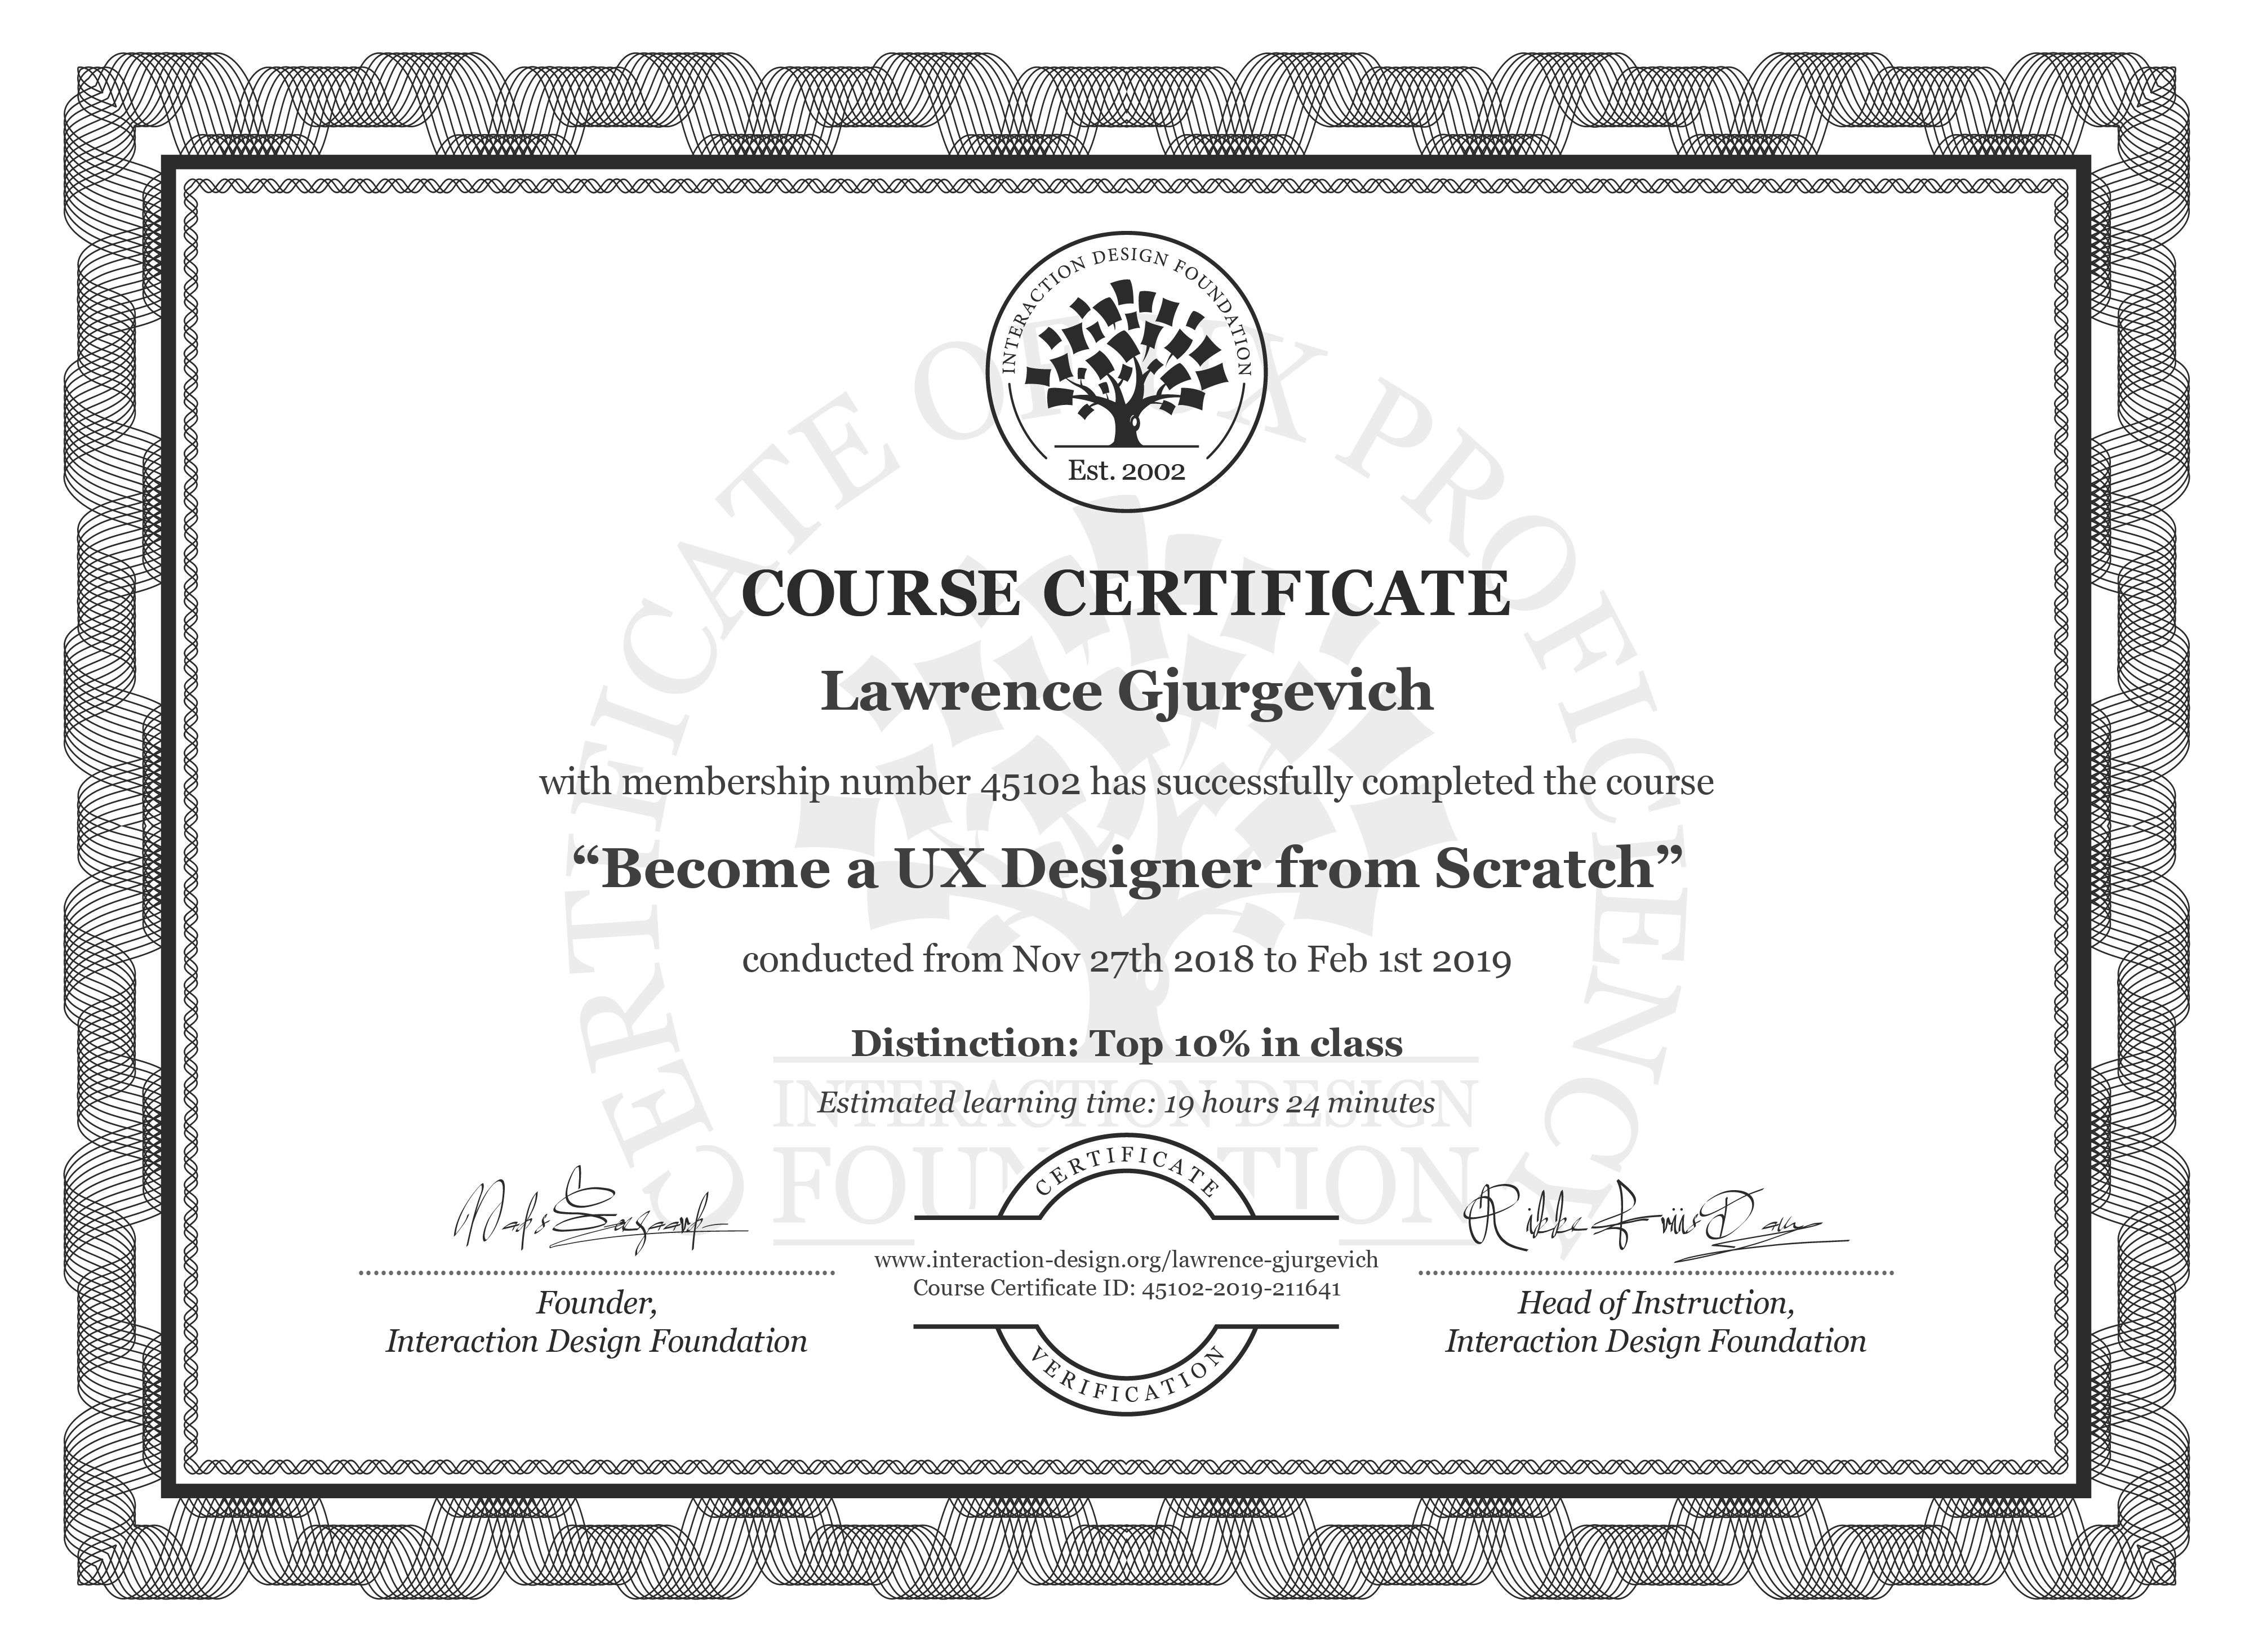 Lawrence Gjurgevich: Course Certificate - User Experience: The Beginner's Guide